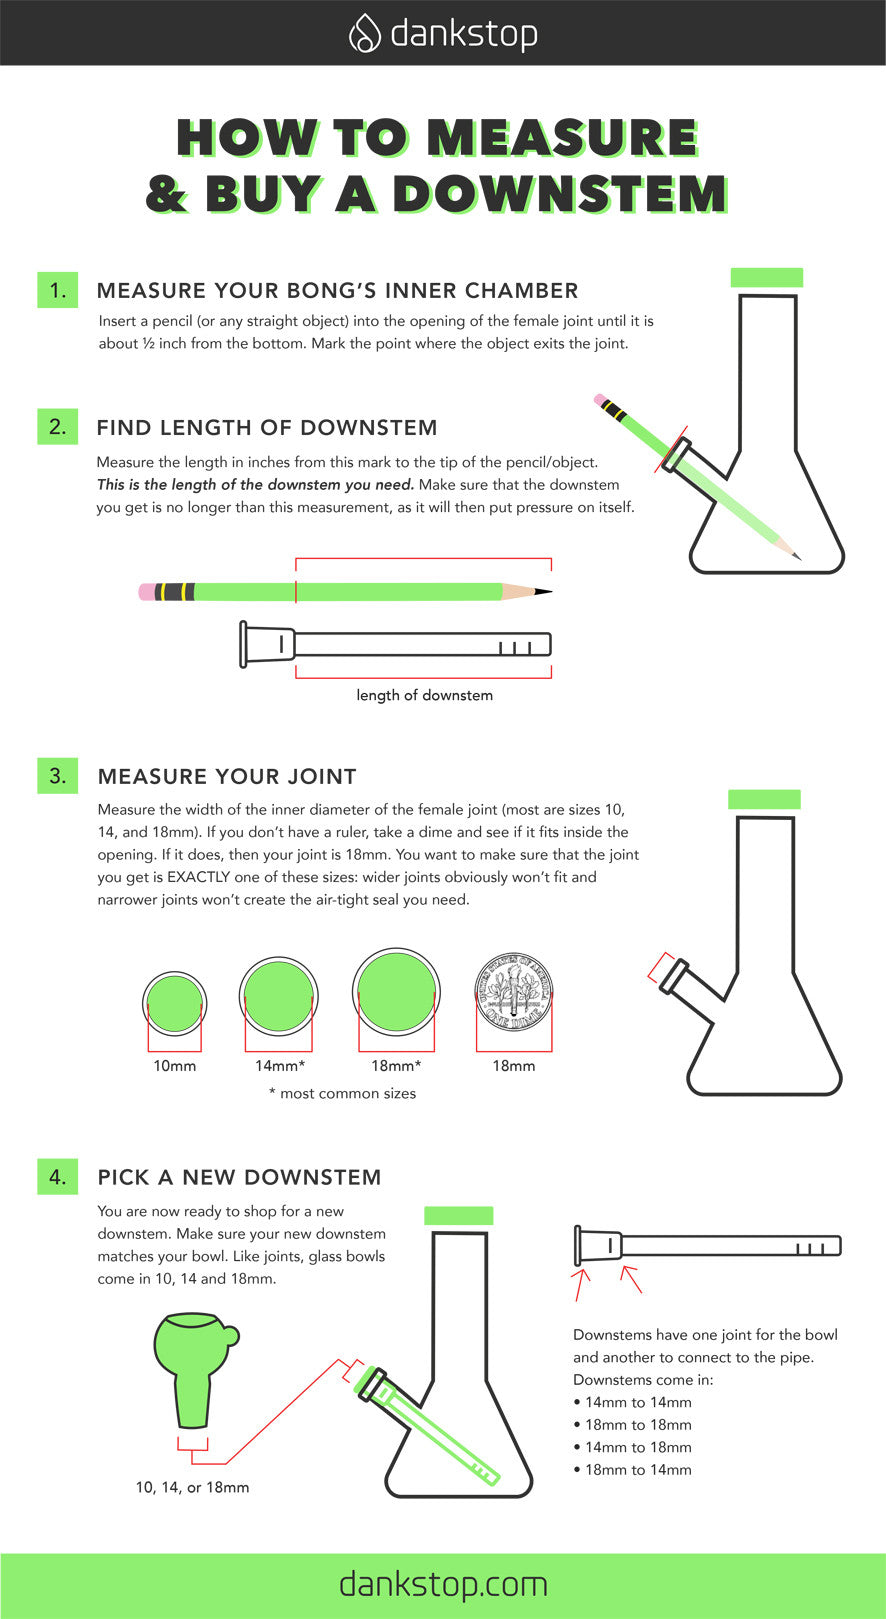 how to measure & buy a downstem